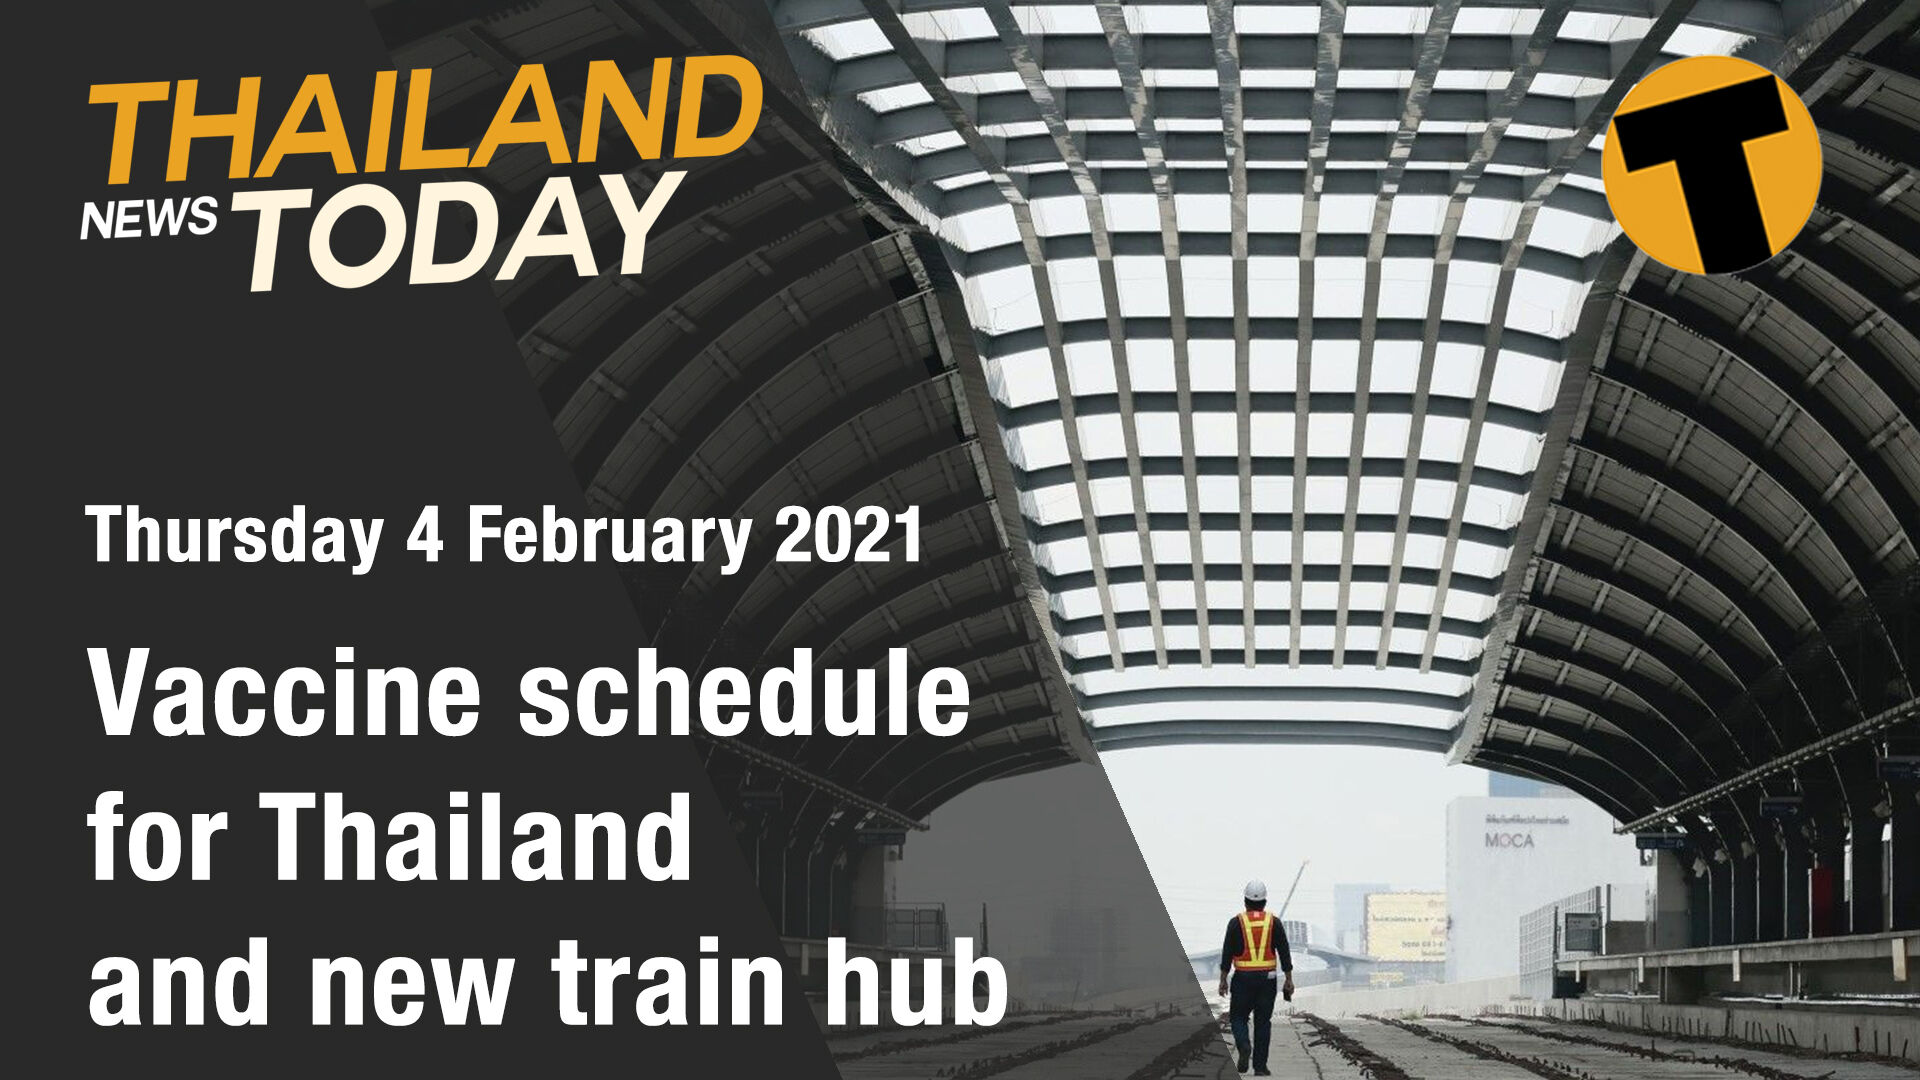 Thailand News Today | Vaccine schedule for Thailand and new train hub | February 4 | The Thaiger